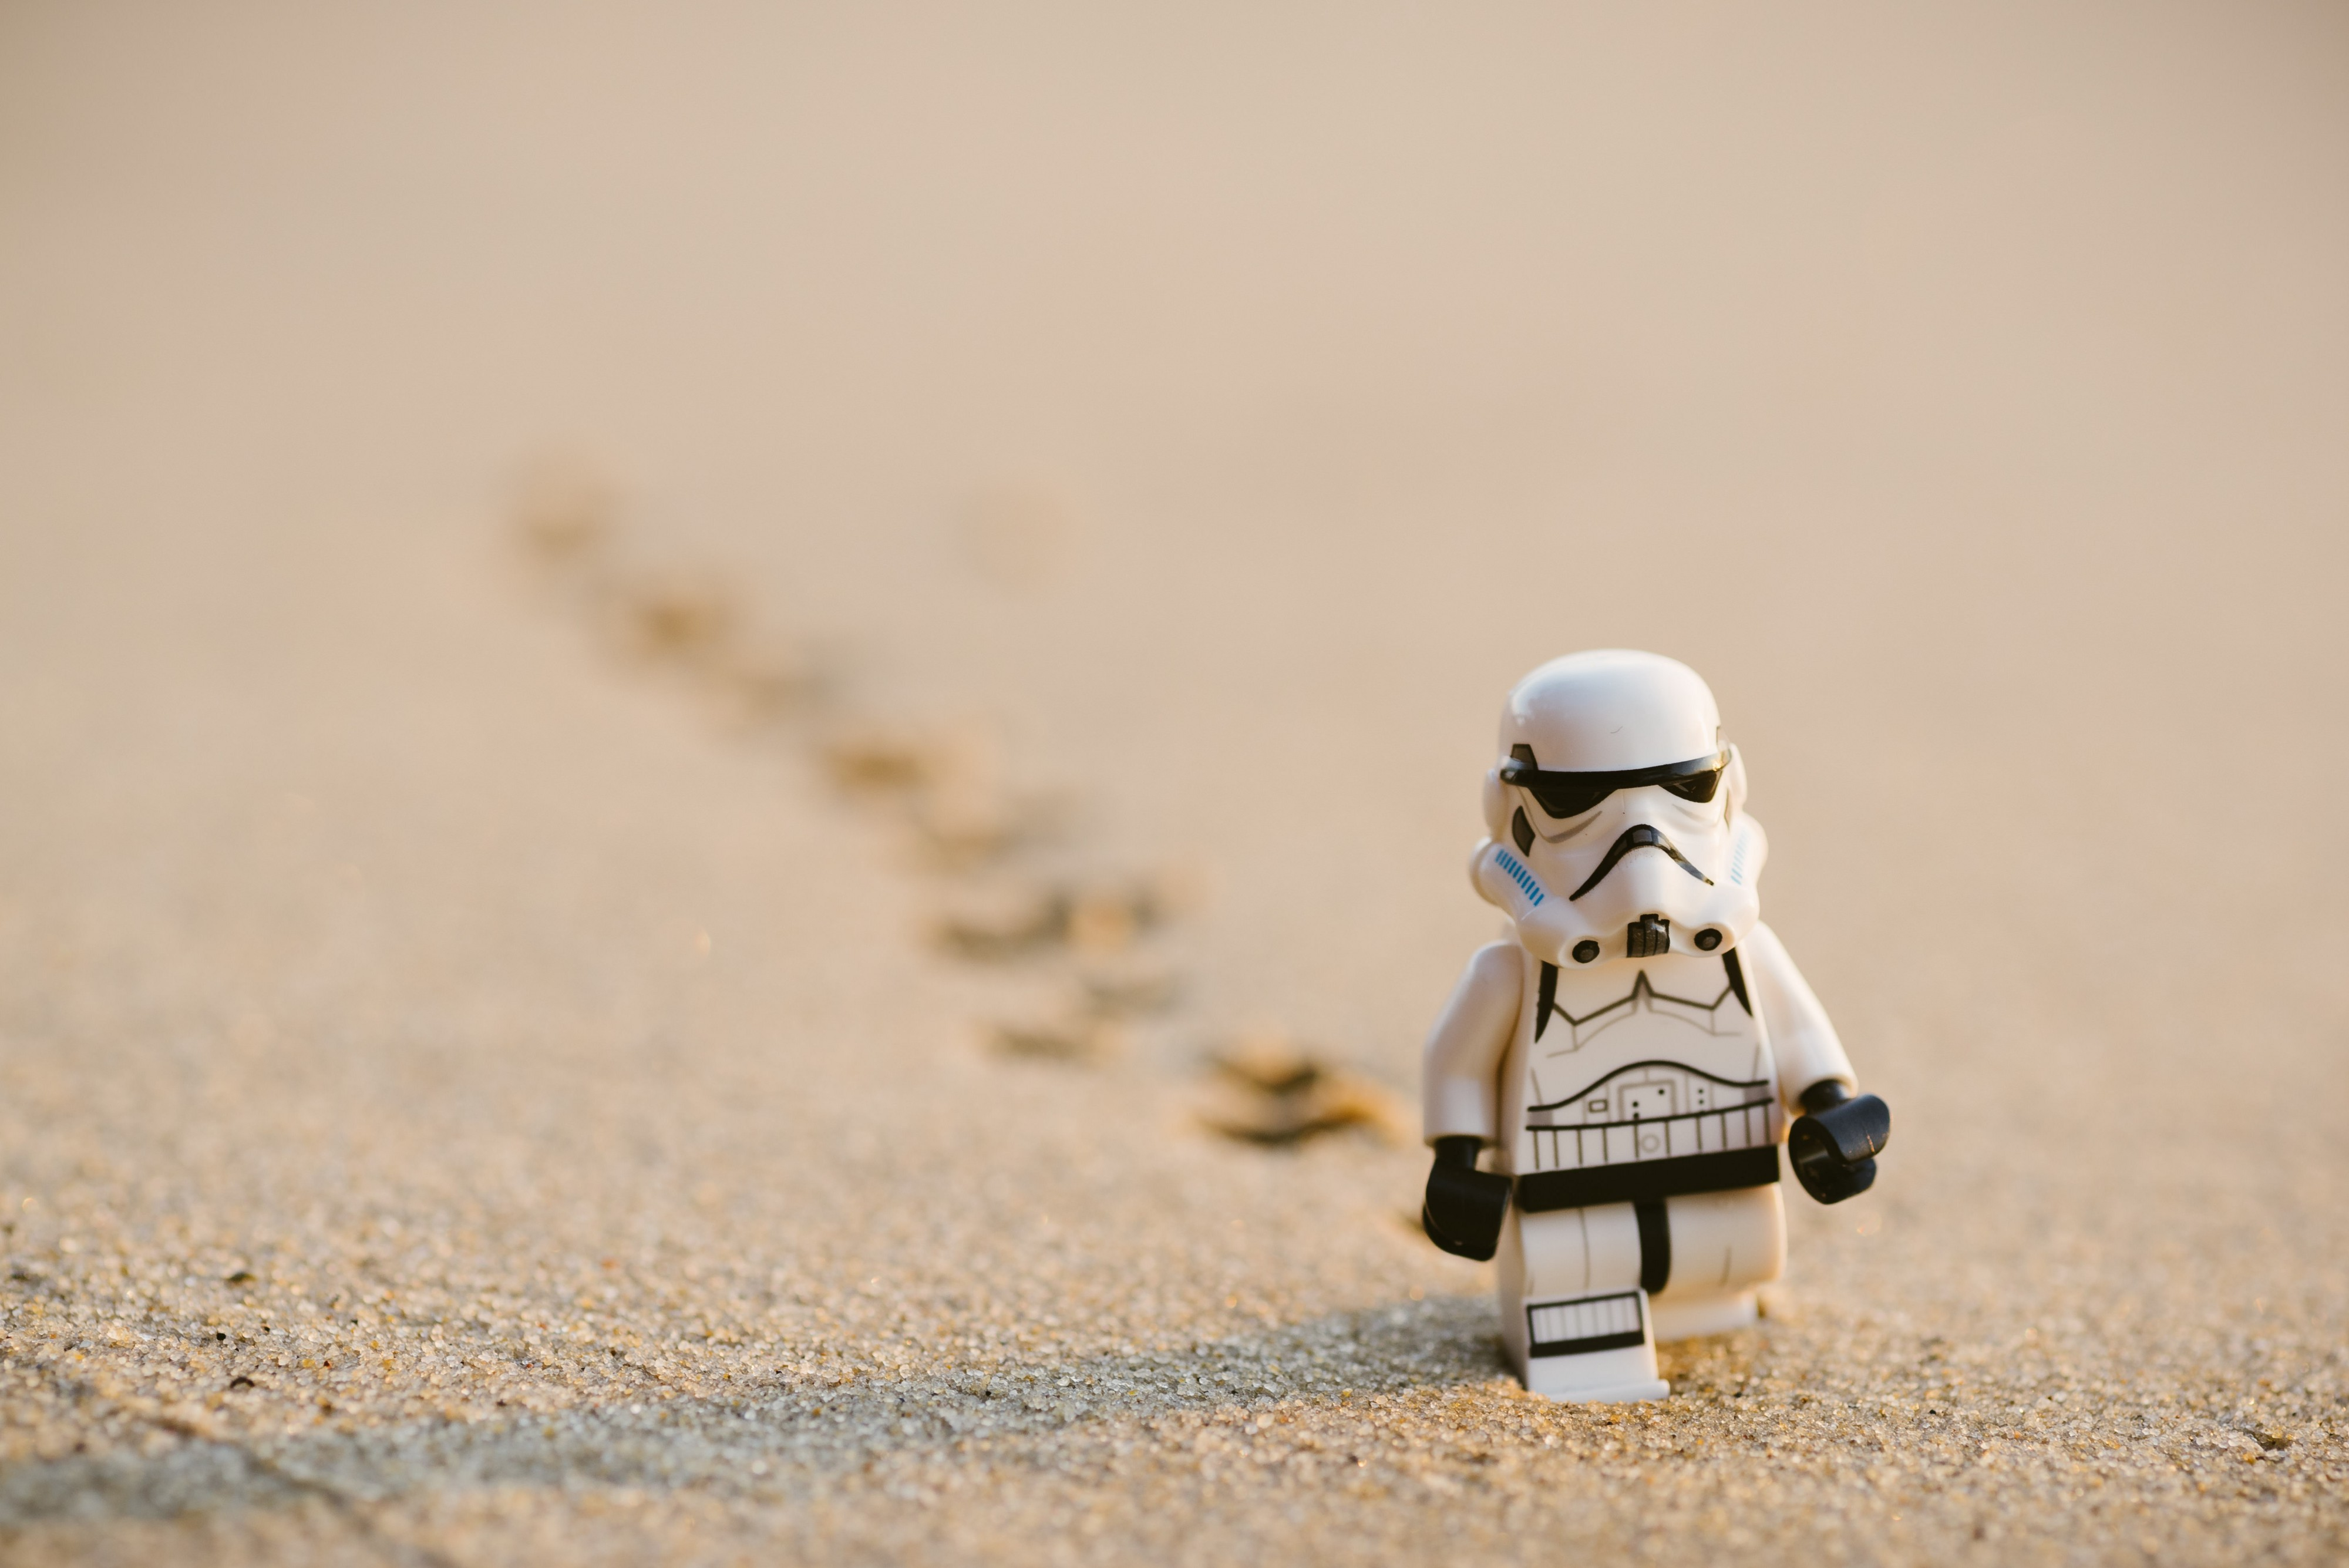 Photo by Daniel Cheung of a Lego Stormtrooper walking through the sand with footsteps behind him.